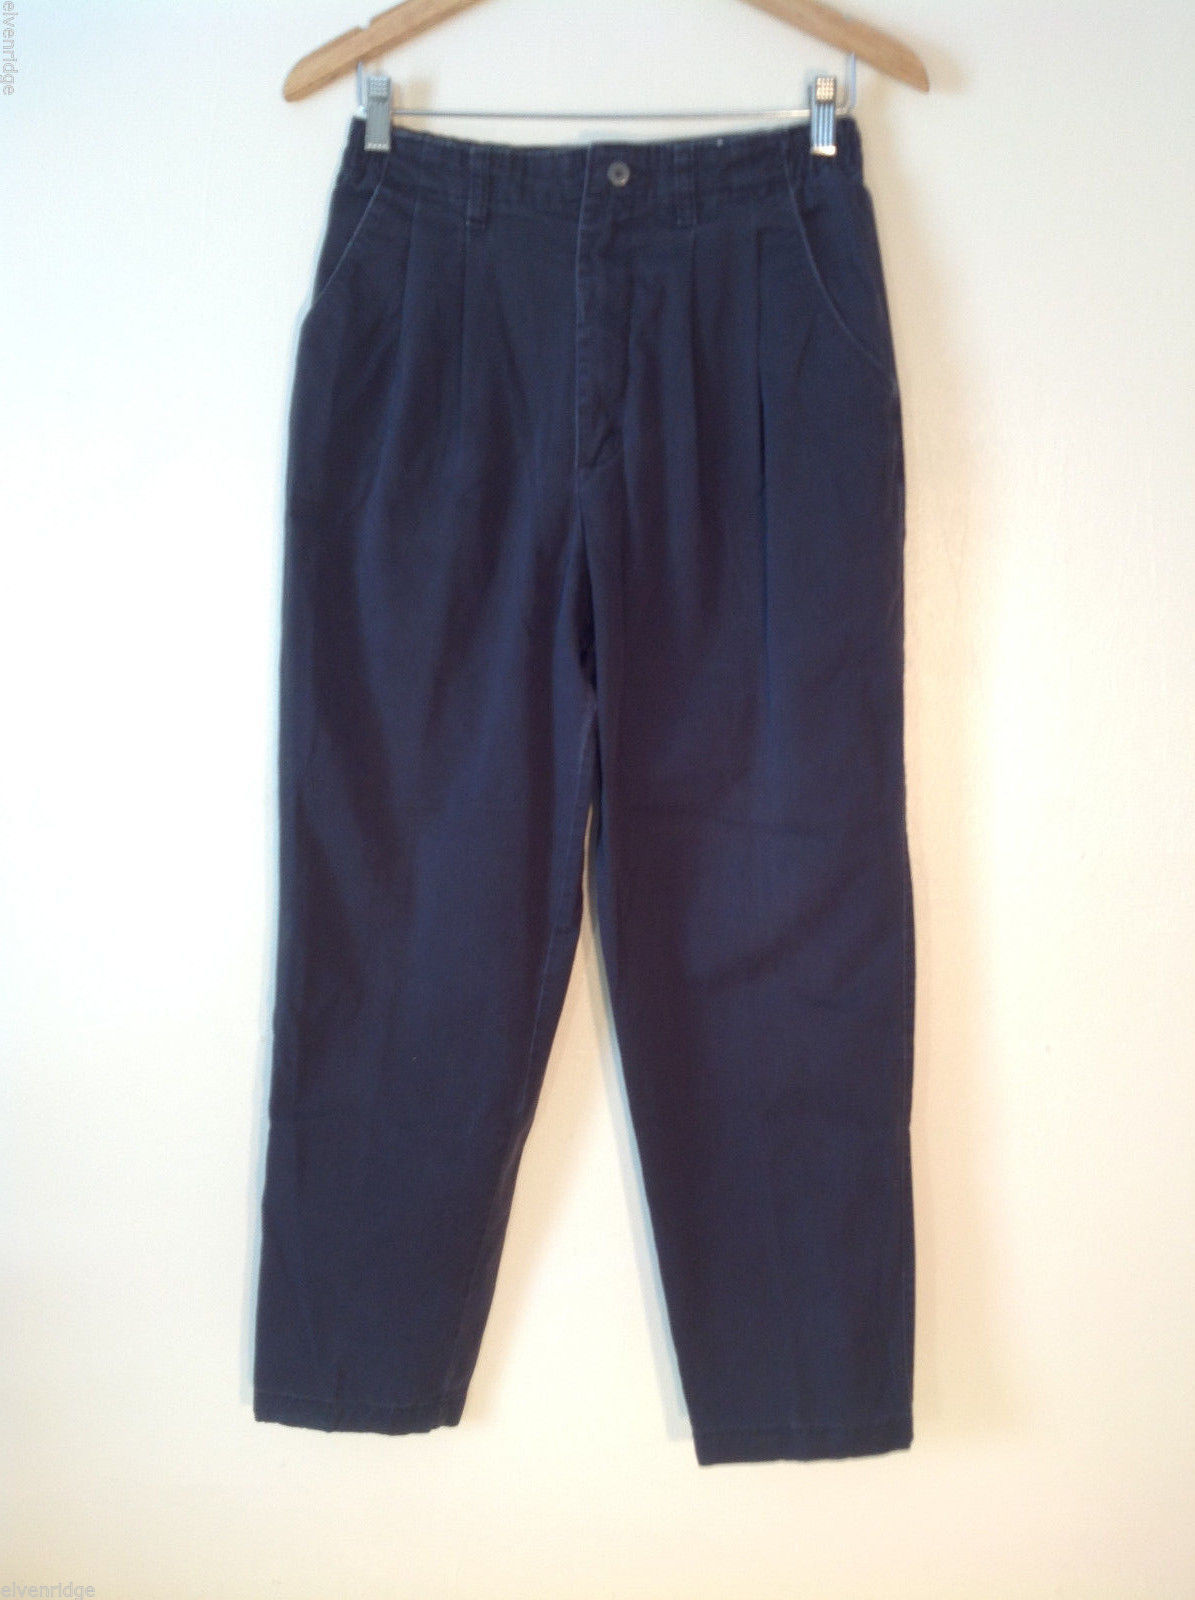 Womens Lee black denim pleated jeans baggy fit size 10S 100% cotton